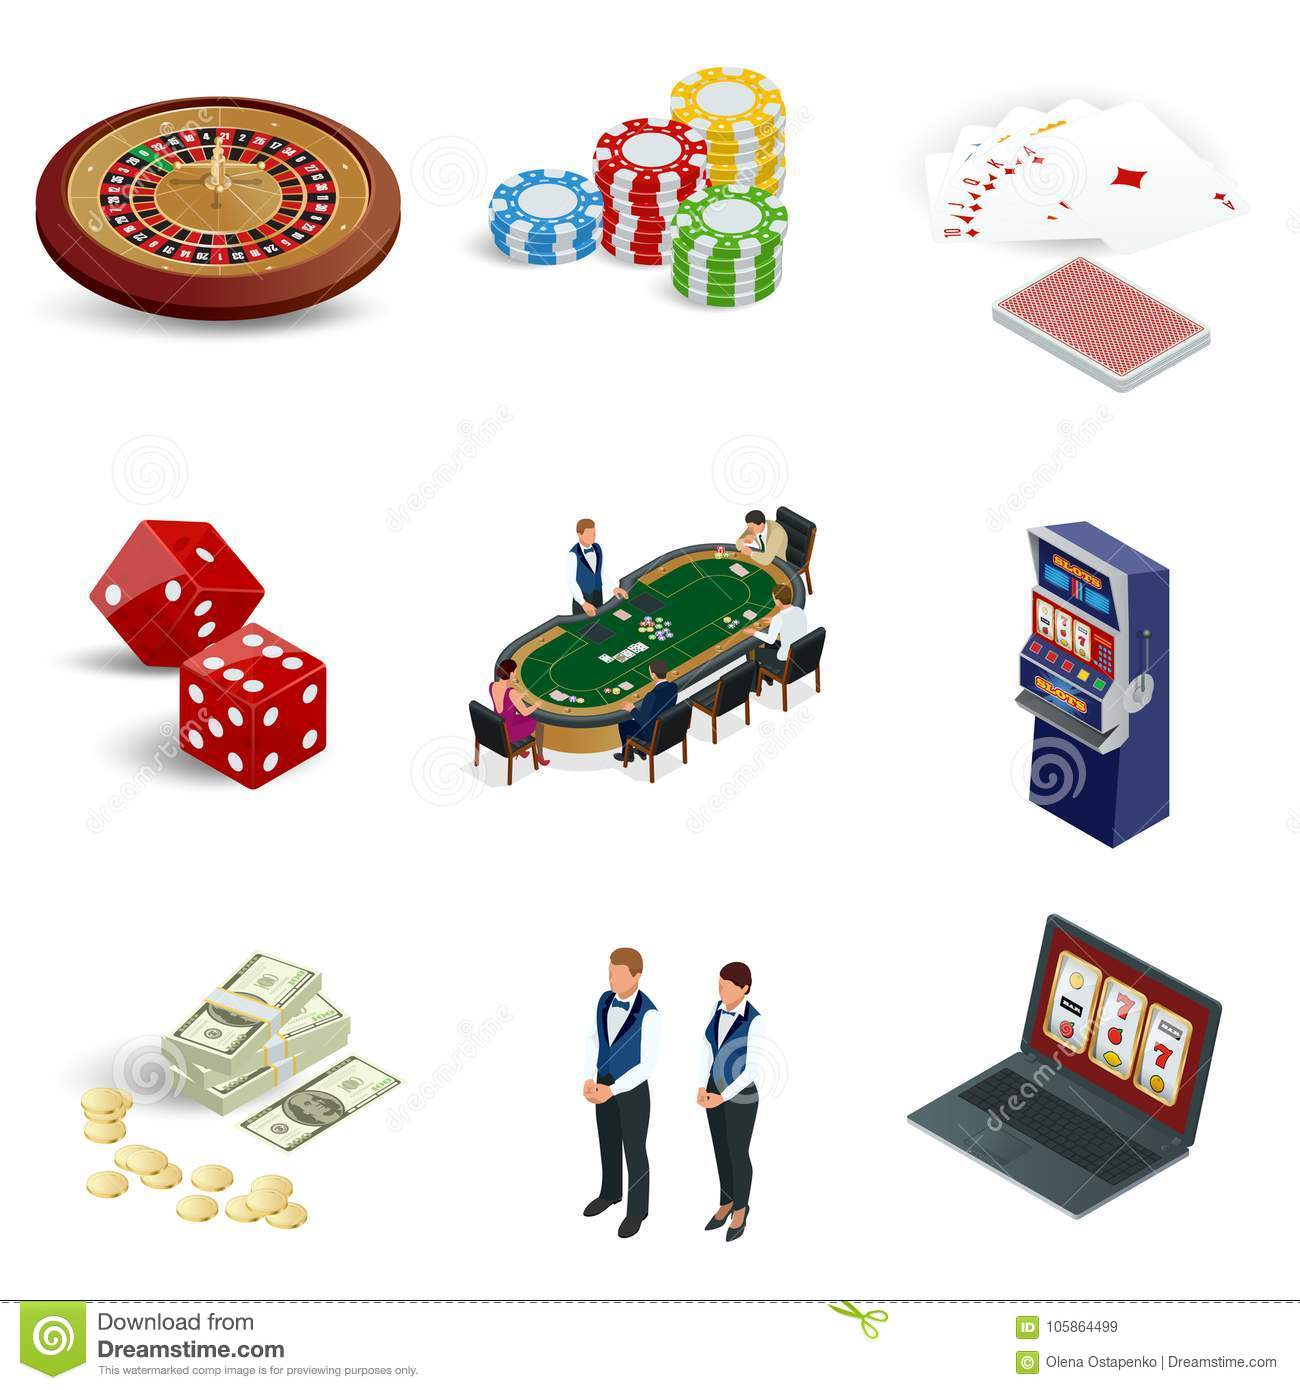 Isometric casino icons set. Laptop with roulette, slot machine, dice, casino chips and playing cards isolated on